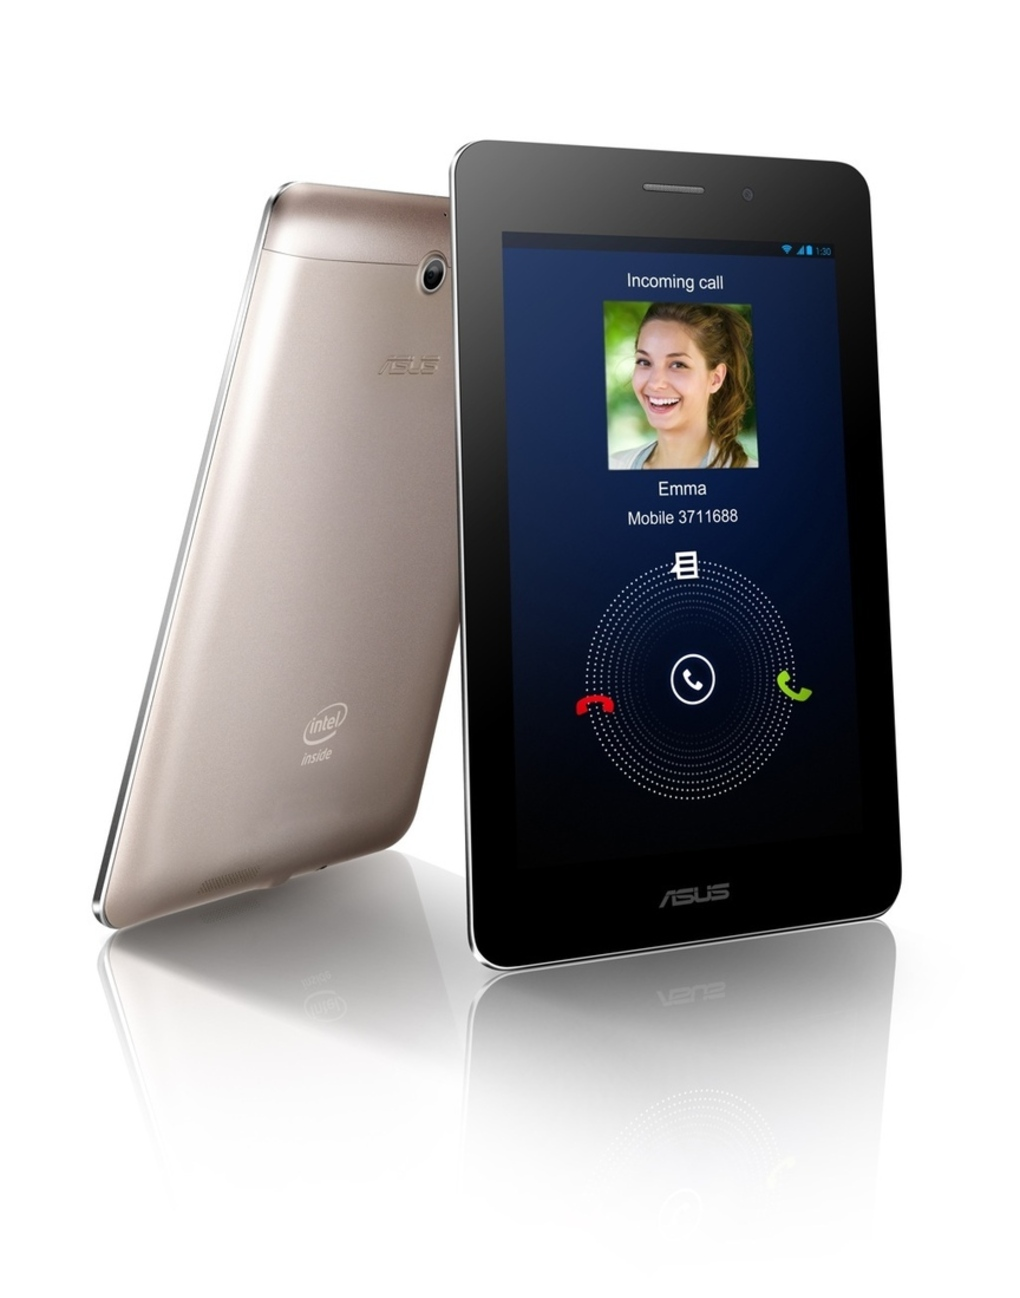 ASUS and Intel Launch the 7-inch ASUS Fonepad™ with 3G Mobile Data and Voice-Calling in India